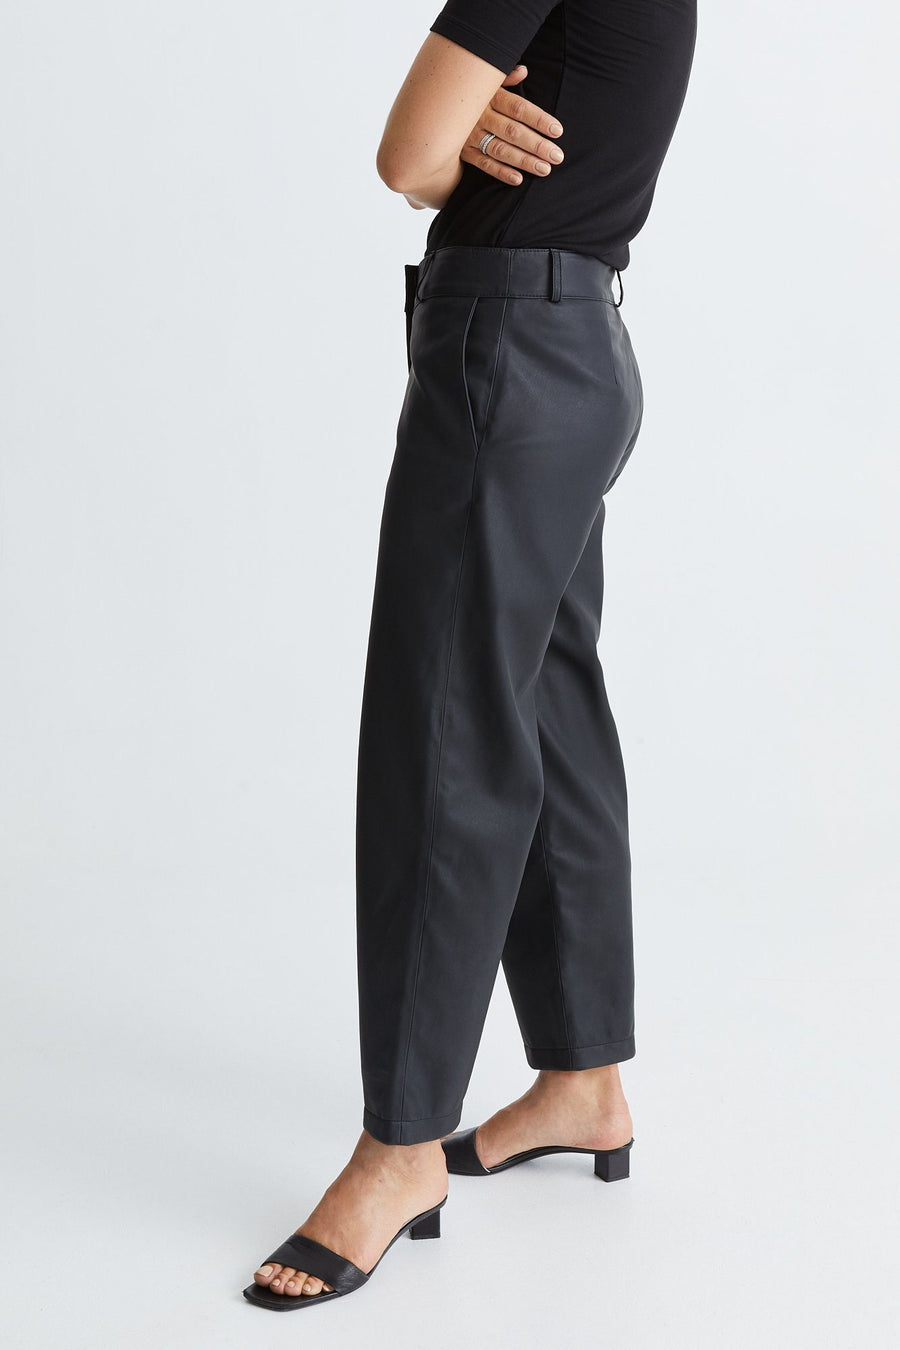 BRYDGES TROUSERS - BLACK